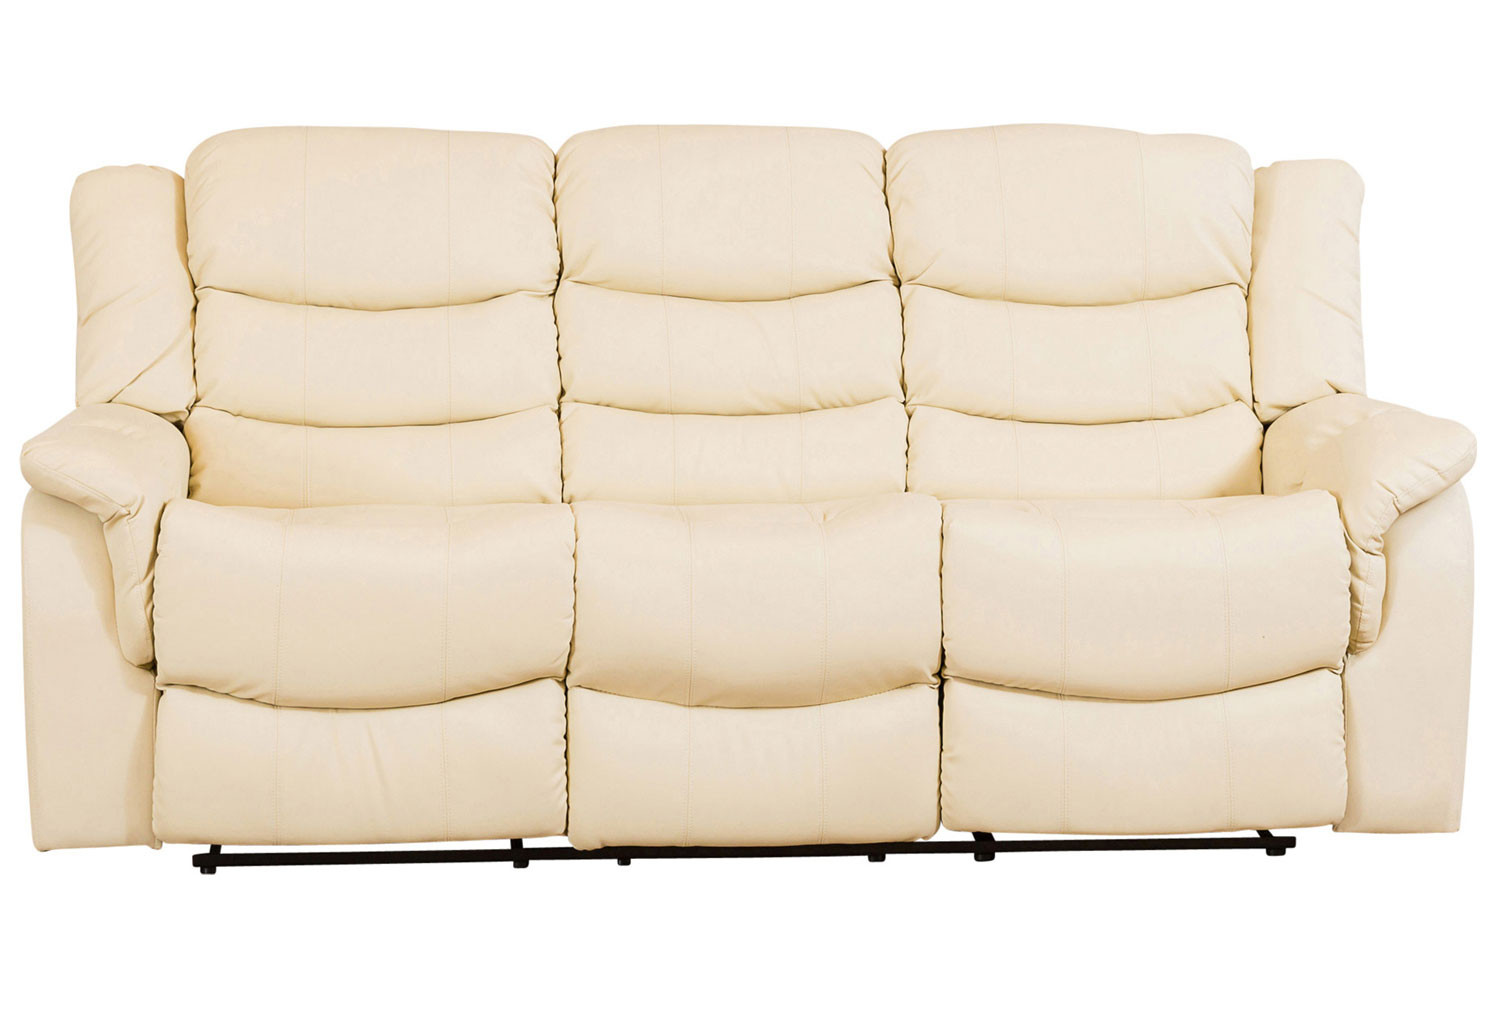 Hunter Leather 3 Seater Recliner Sofa